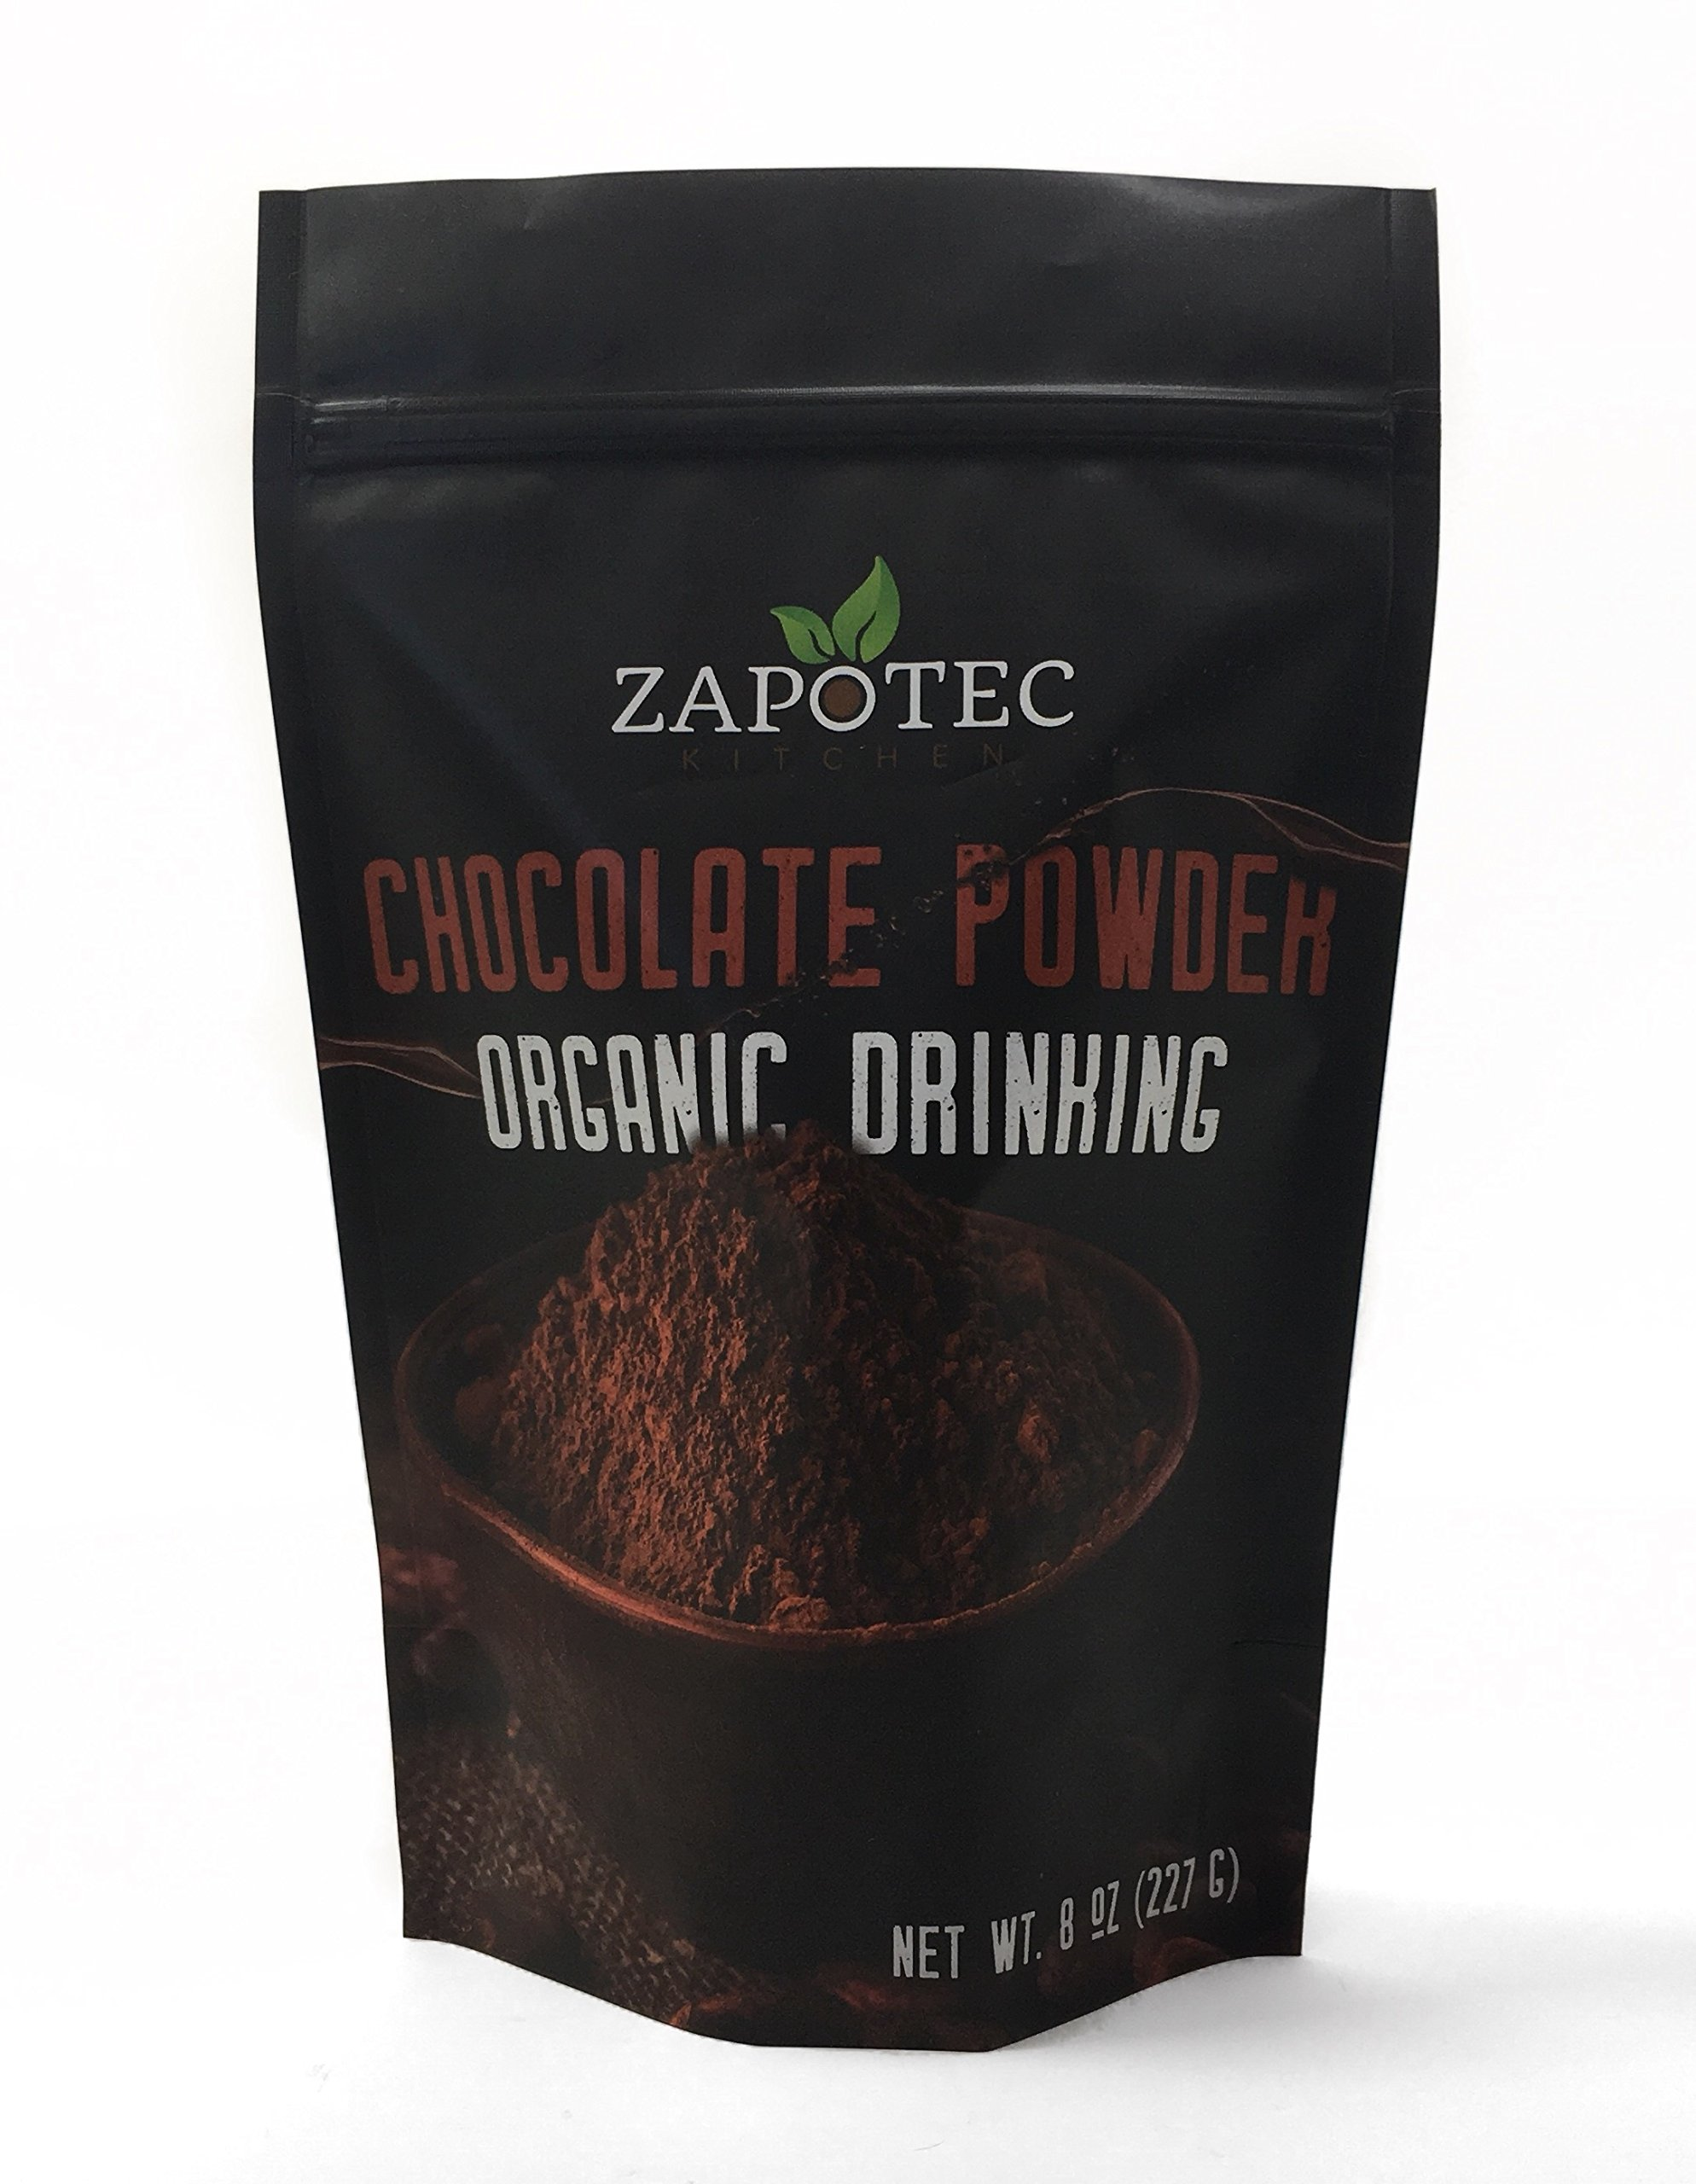 Zapotec Kitchen Organic Raw Cocoa Powder, Wild Dark Chocolate Powder, Handcrafted, Organically Grown Non-Alkalized Cacao from... Wild Foods